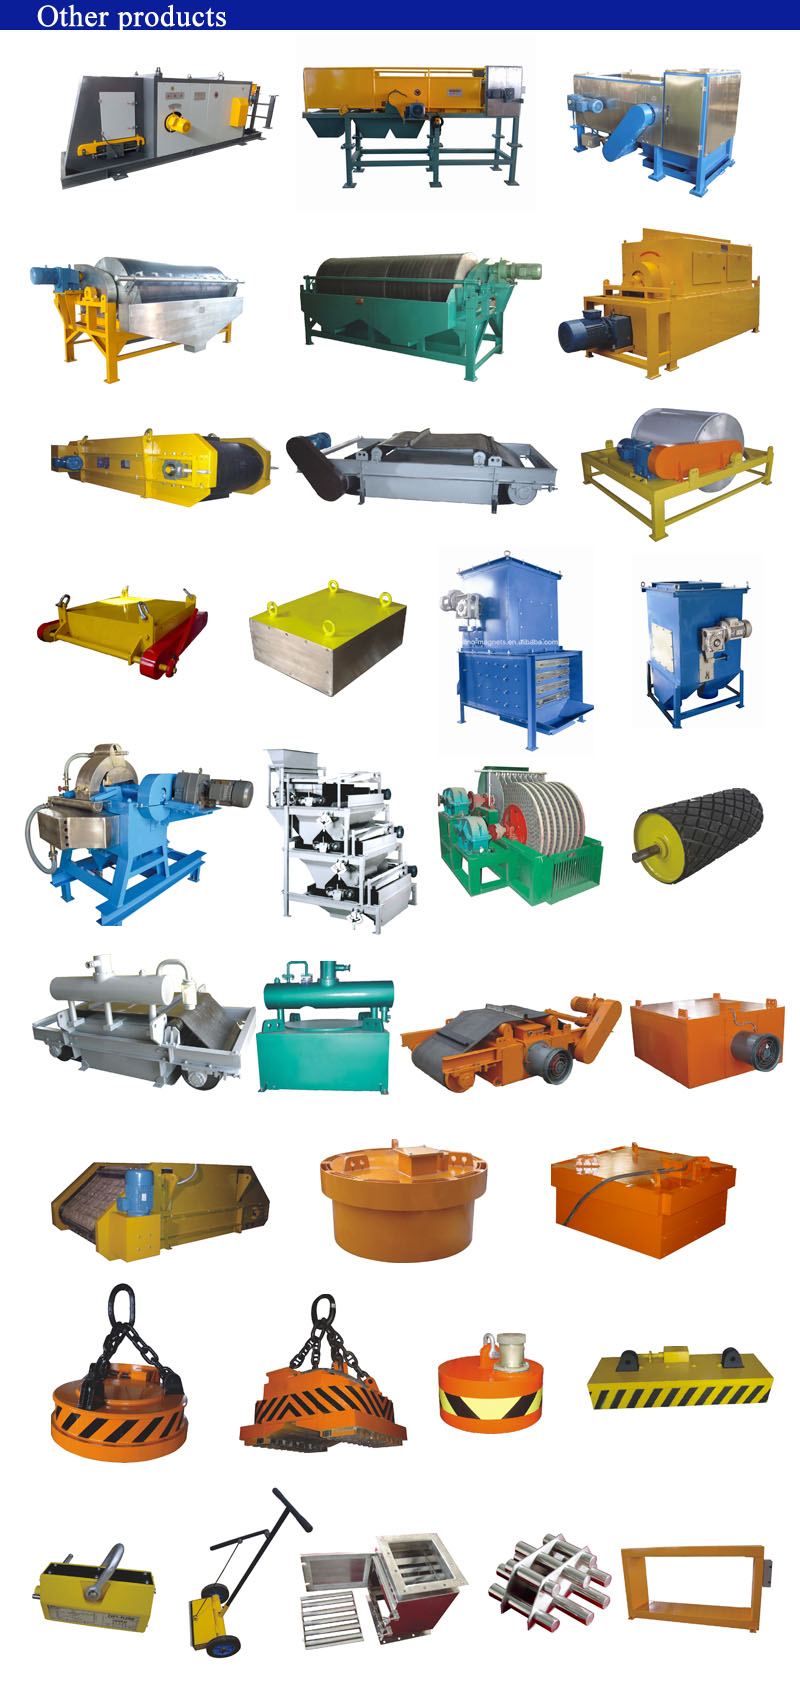 Magnetic's resource recovery equipment for valuable metals from crushed city waste